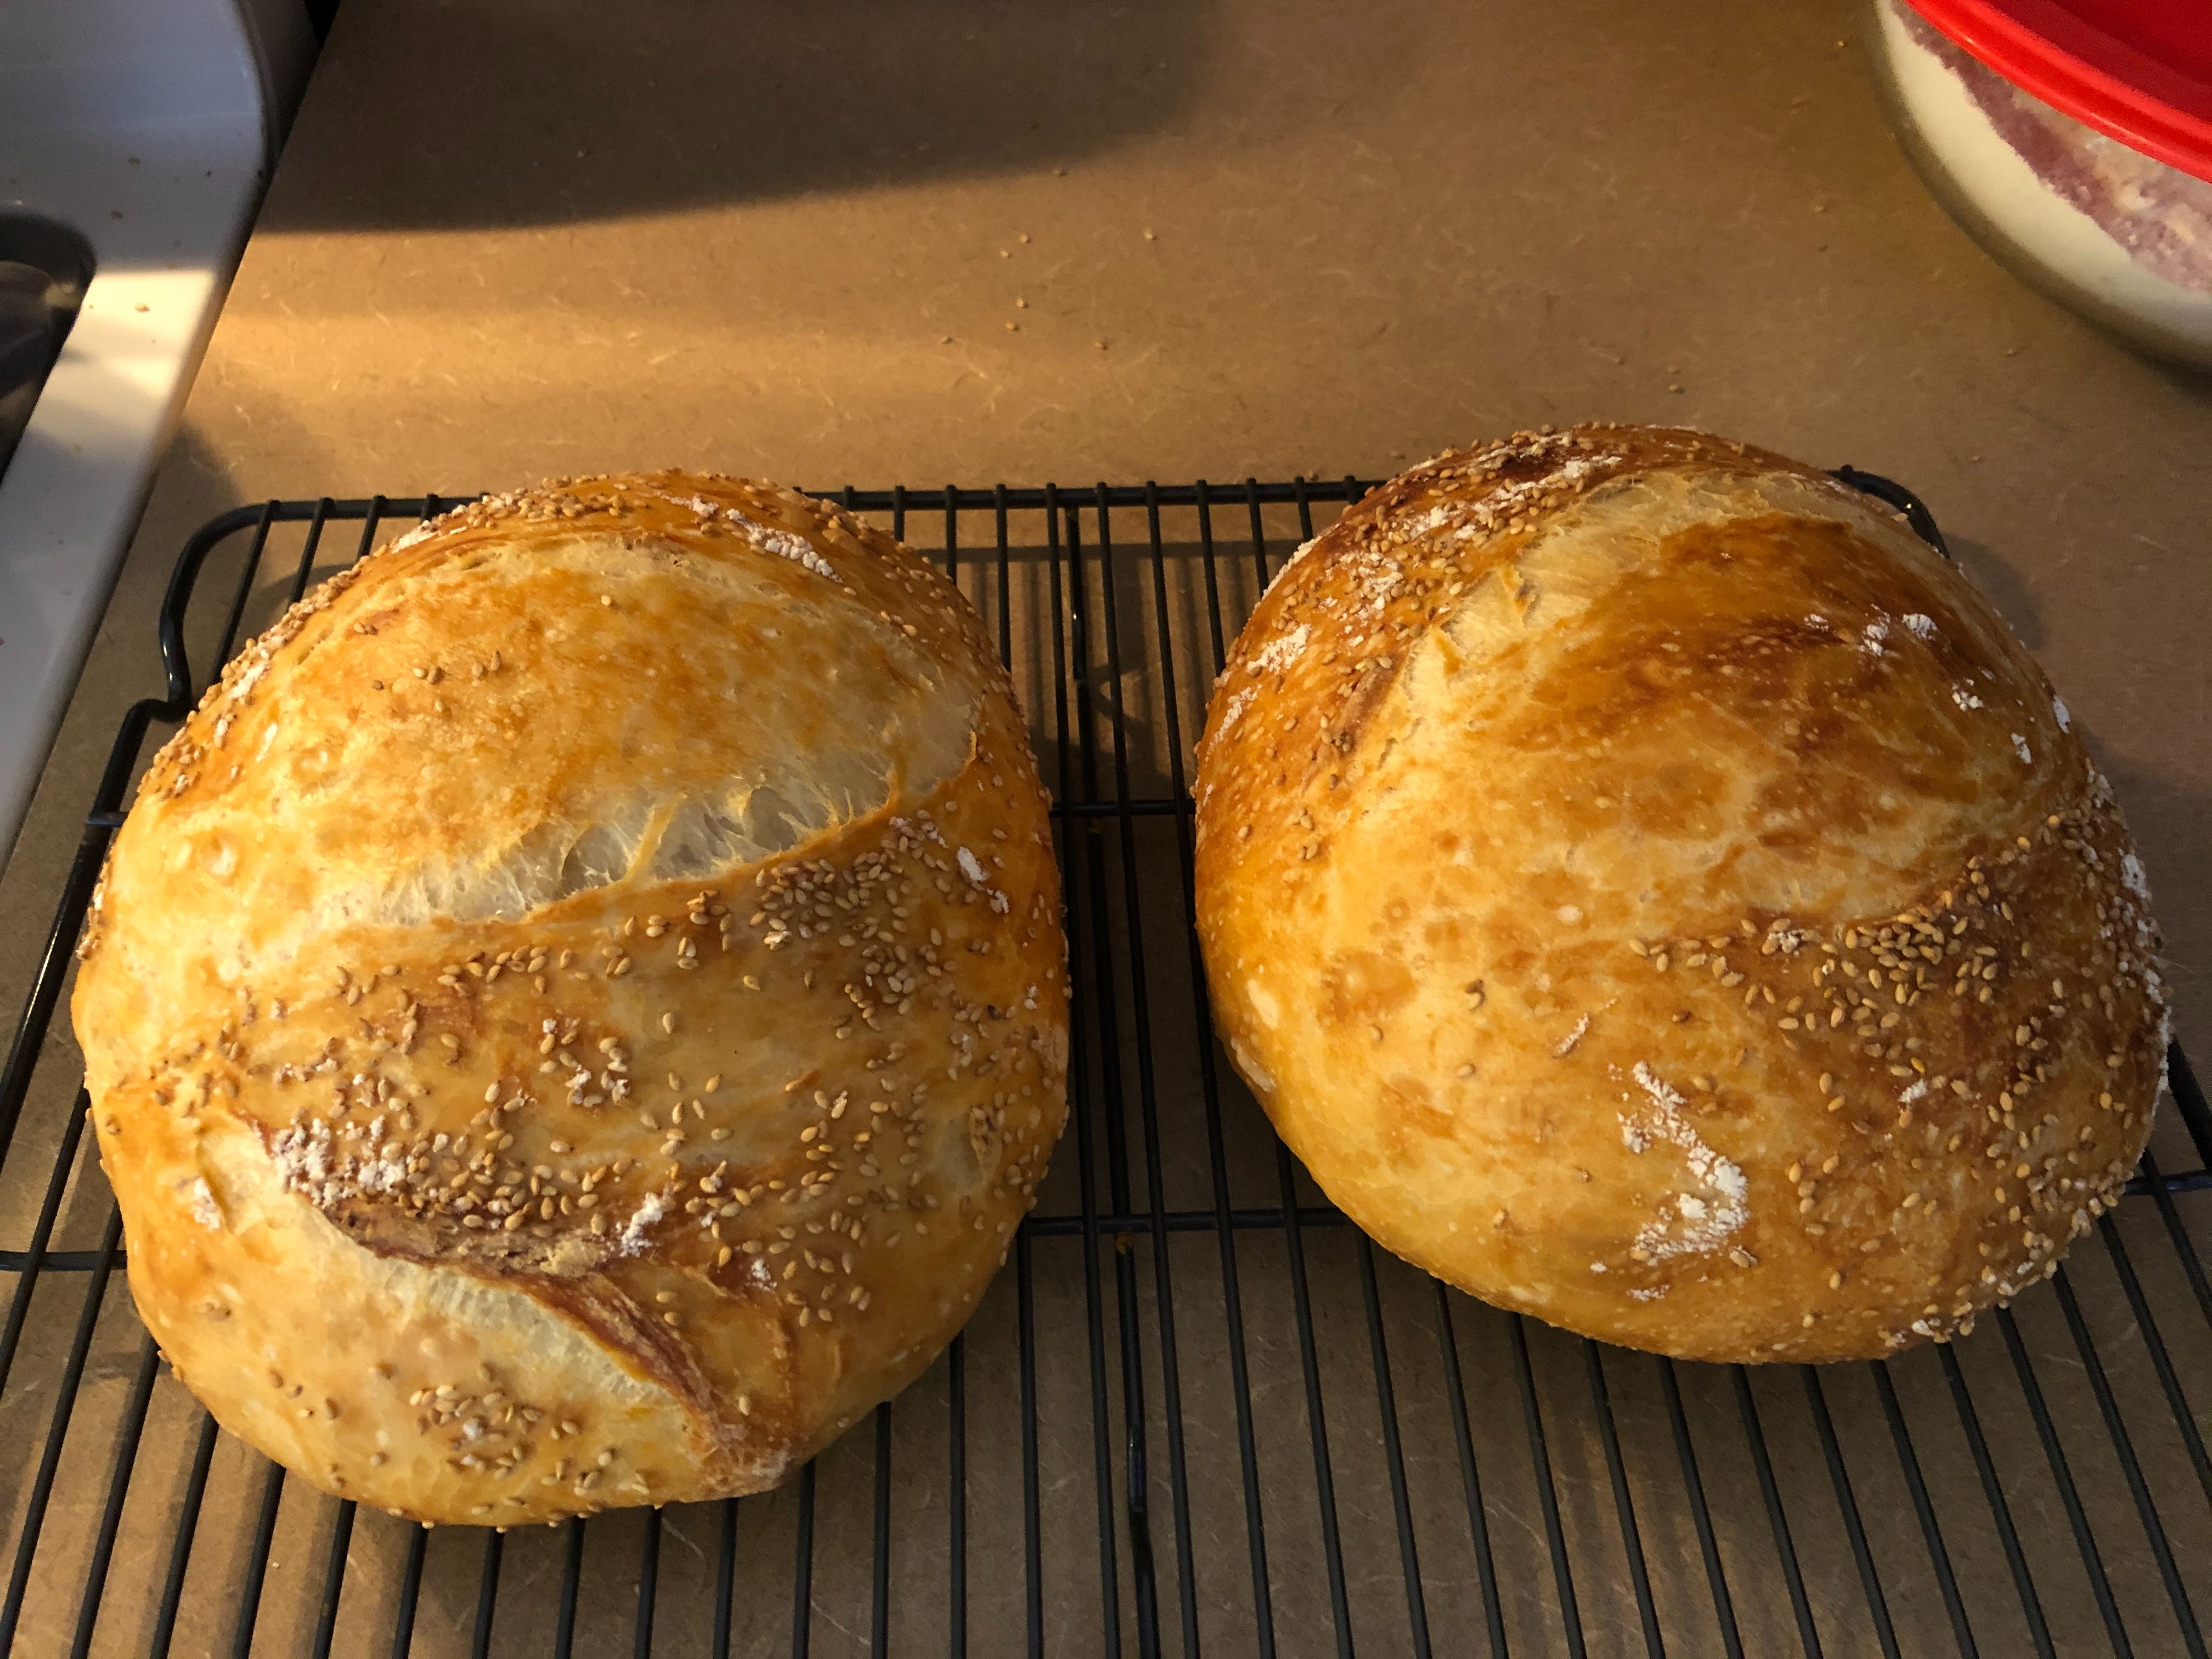 Two fine-looking loaves of freshly cooked bread sitting on a counter